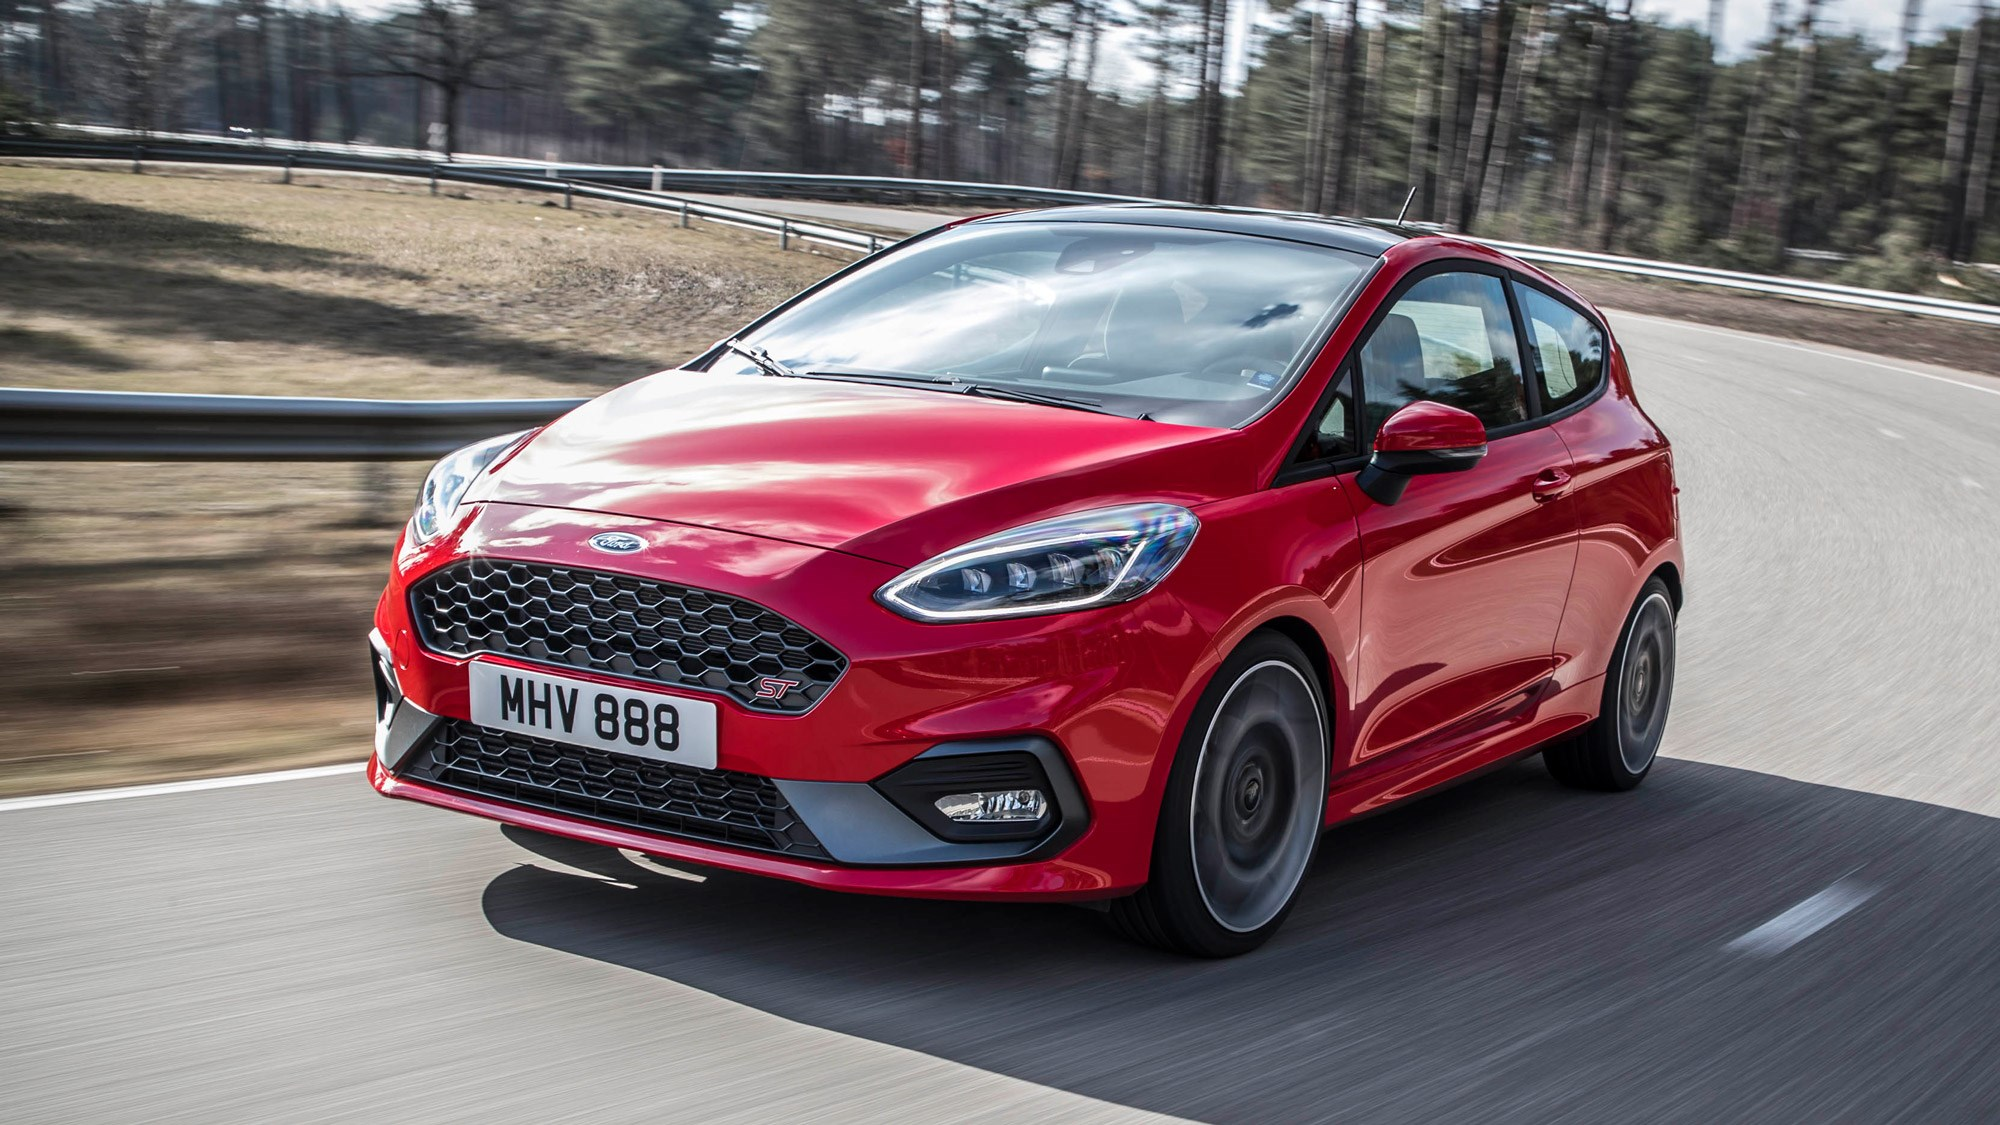 Ford Fiesta ST review (2018): a modern classic hot hatch | CAR Magazine